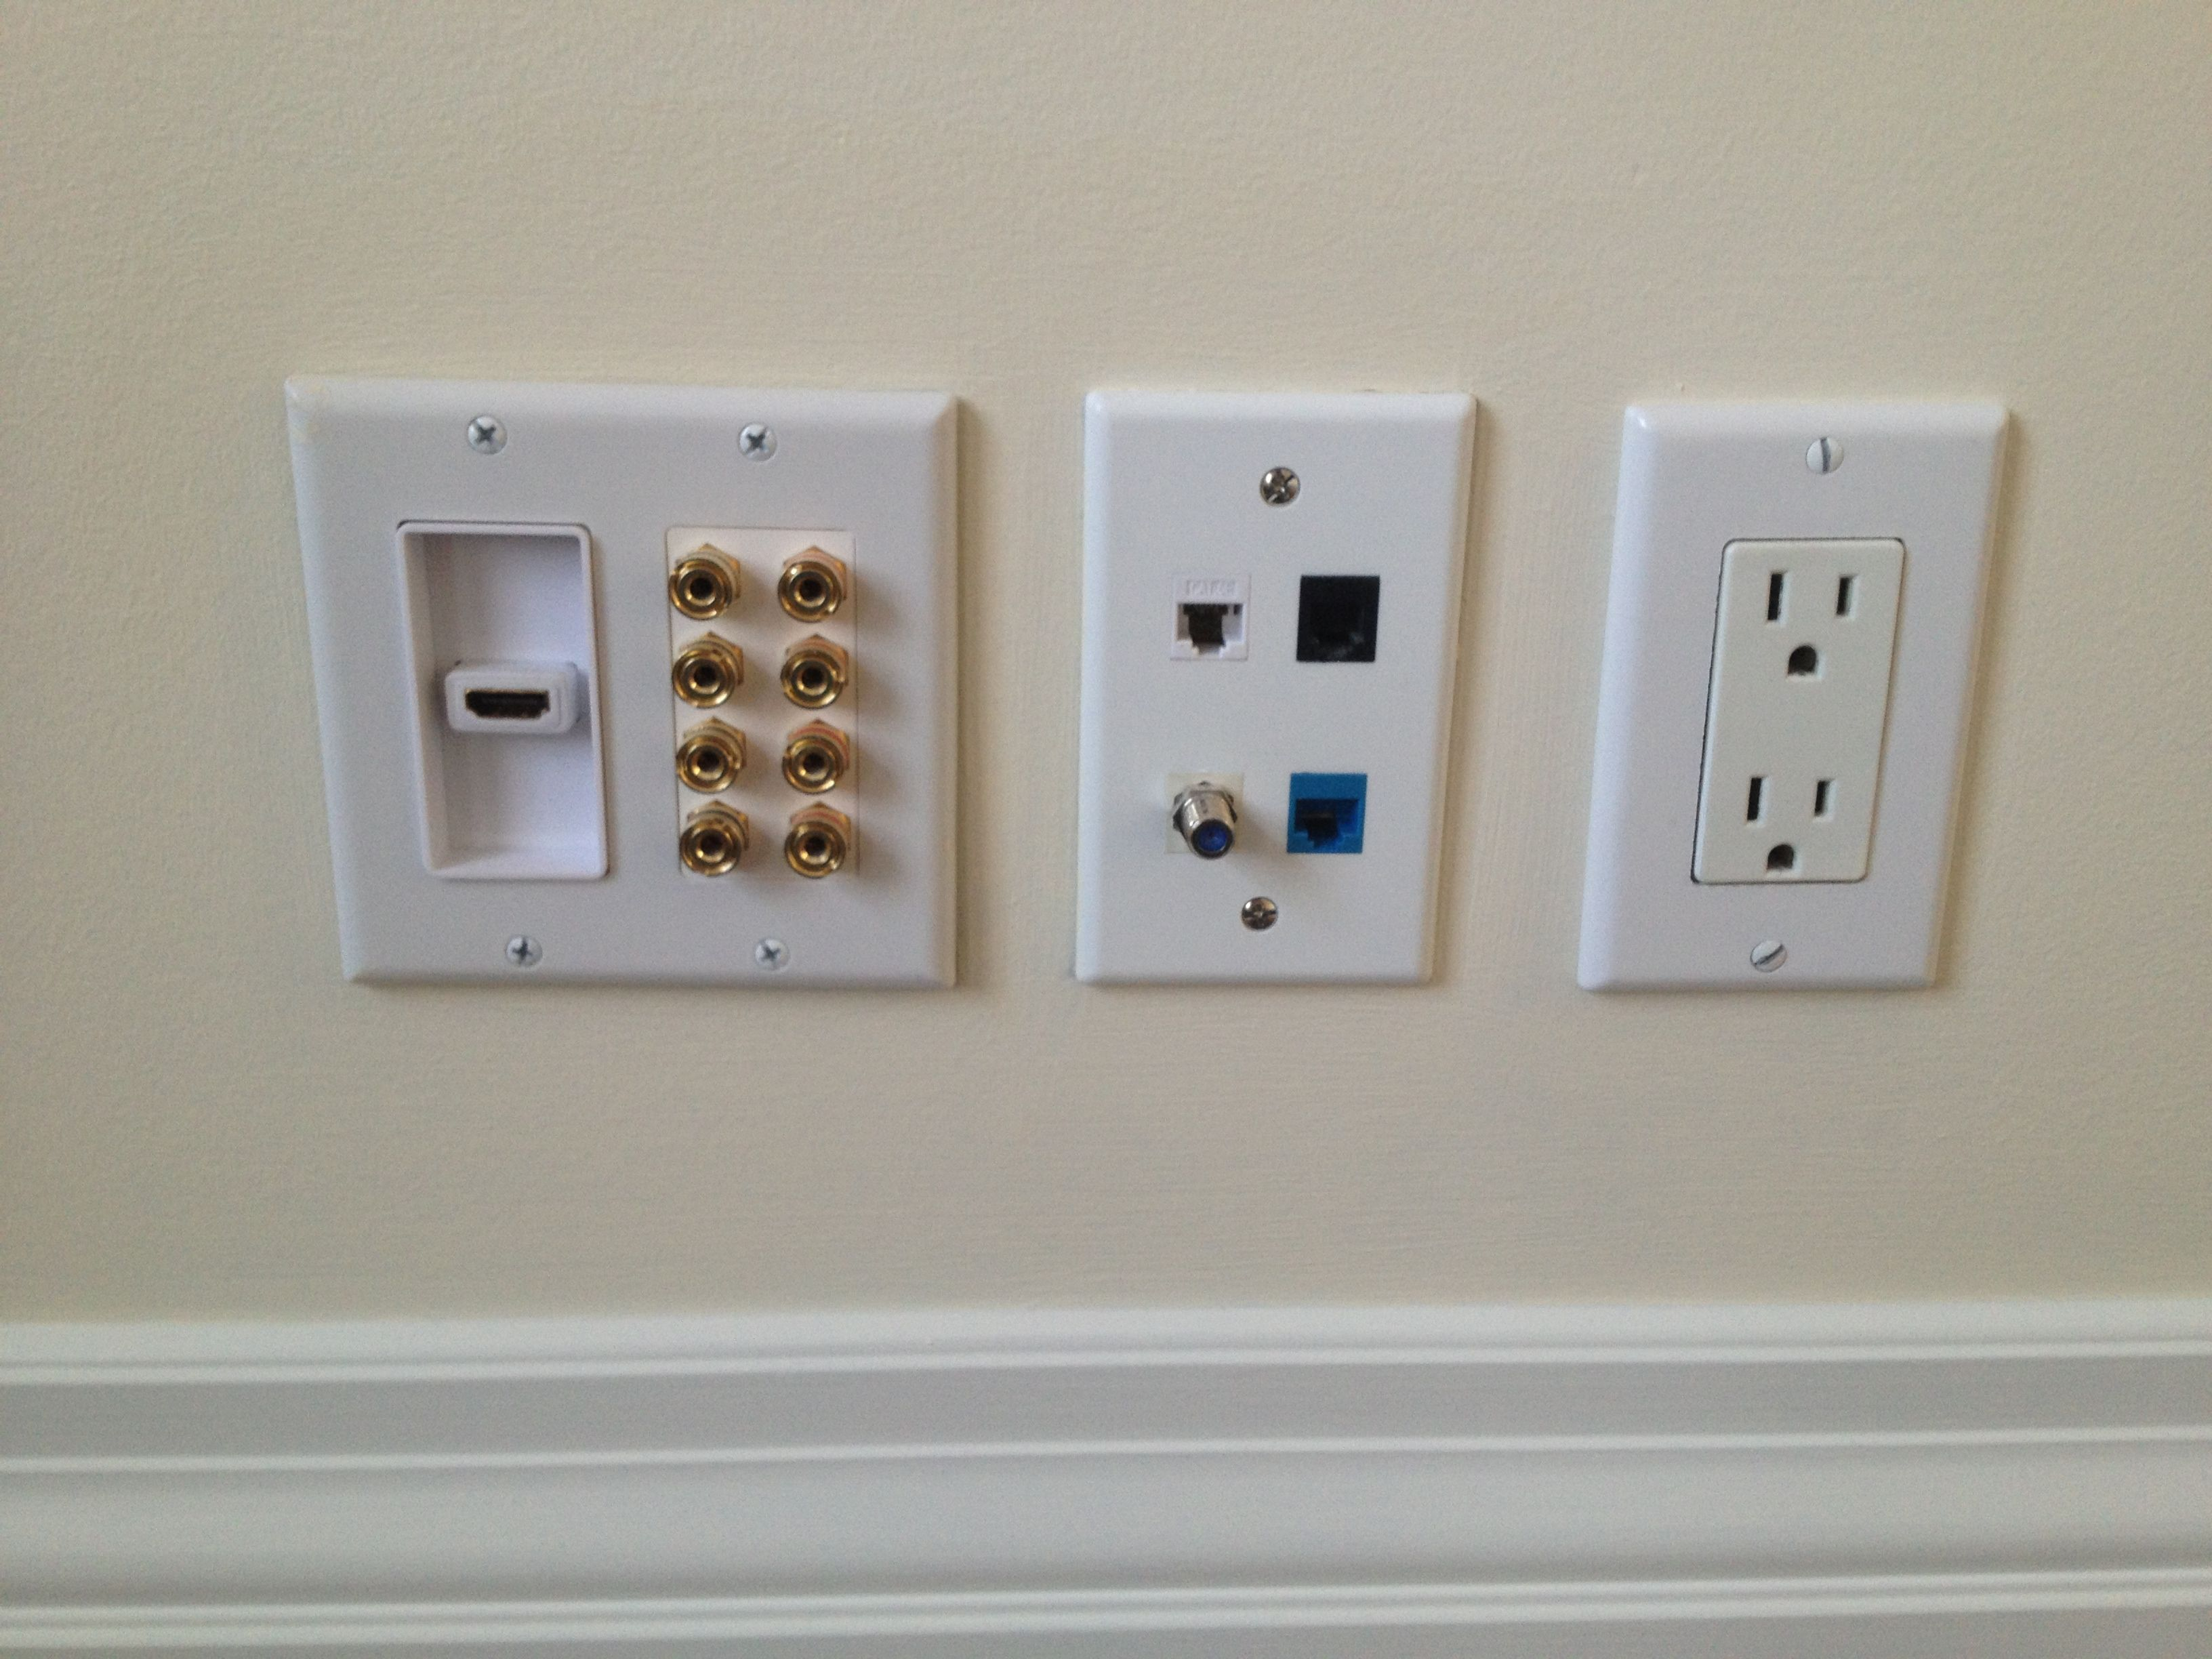 1 Hdmi Port Decora Insert With 4 Pairs Of Banana Plug